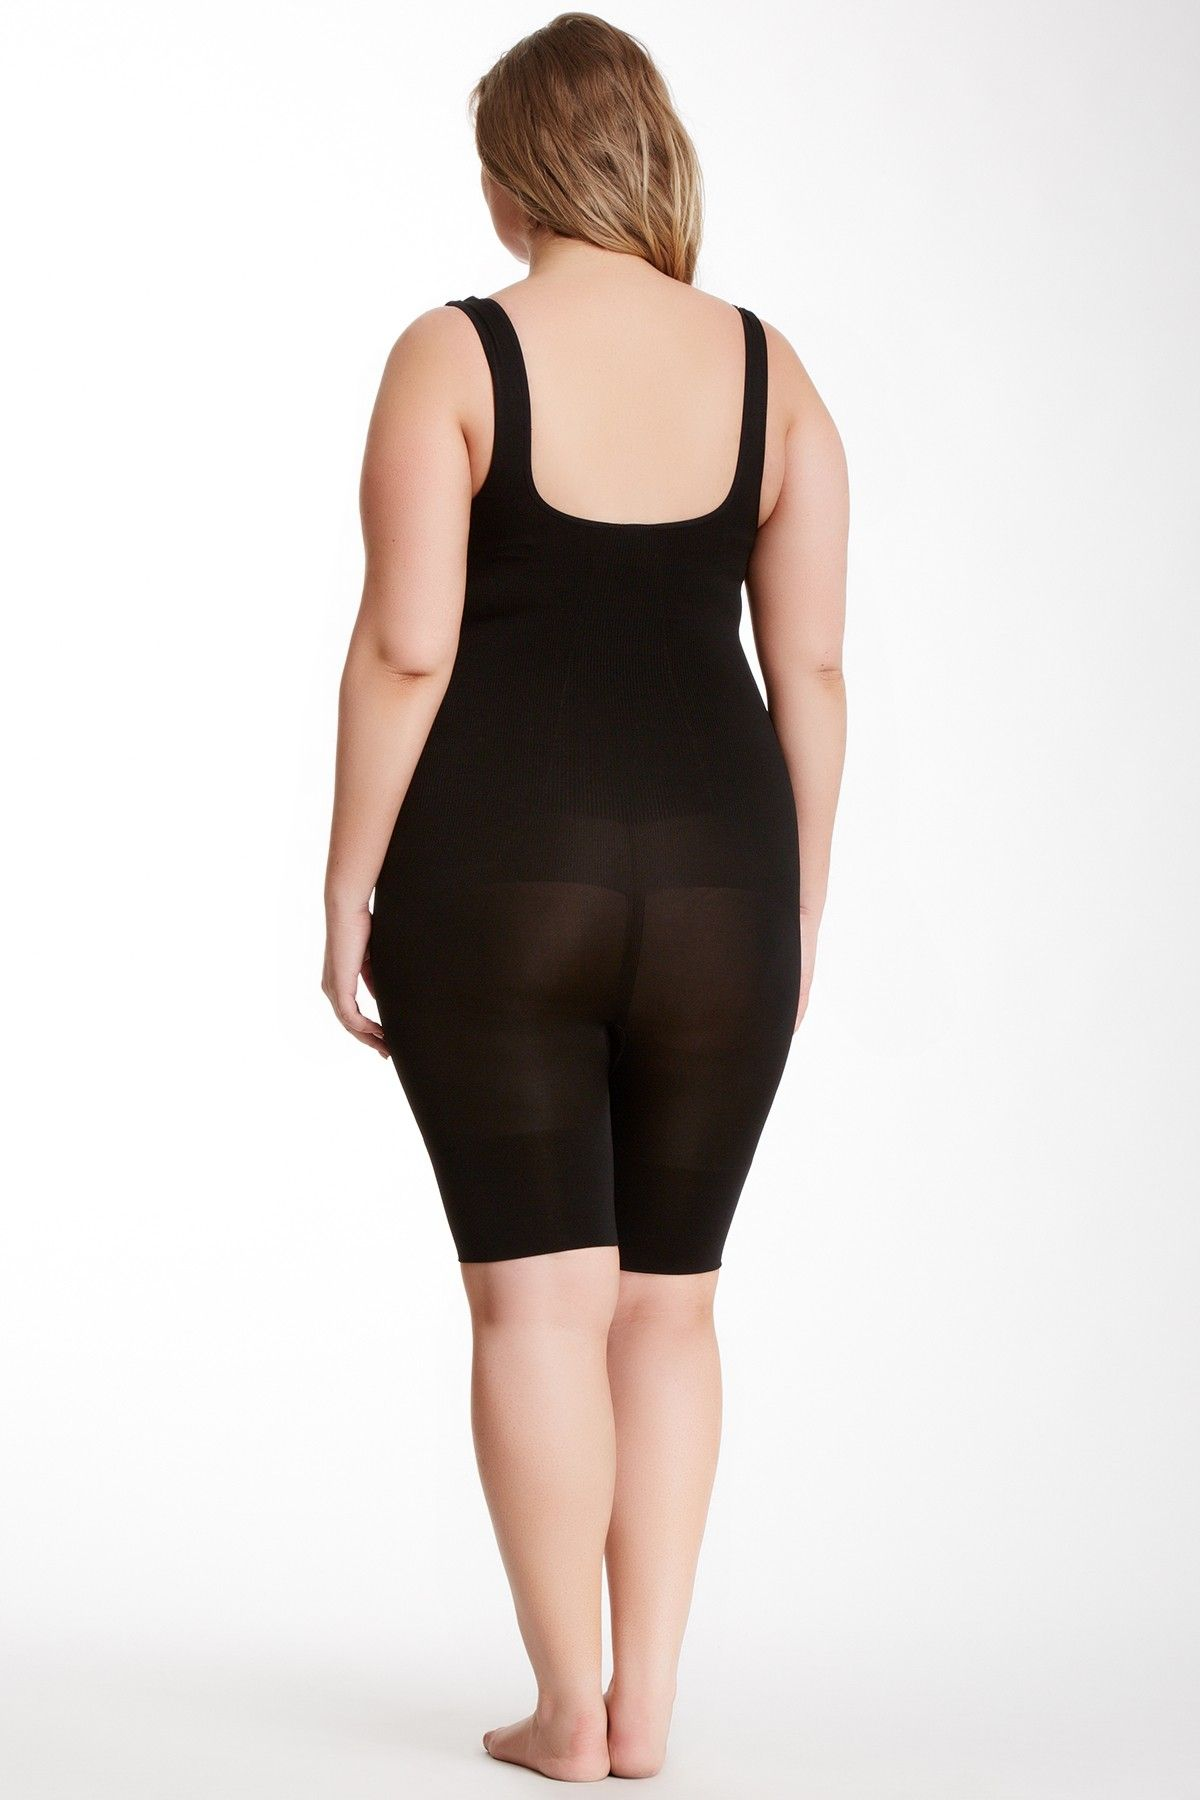 Regular Frontless Body Shaper (Plus Size) | Shapewear, Nordstrom and ...